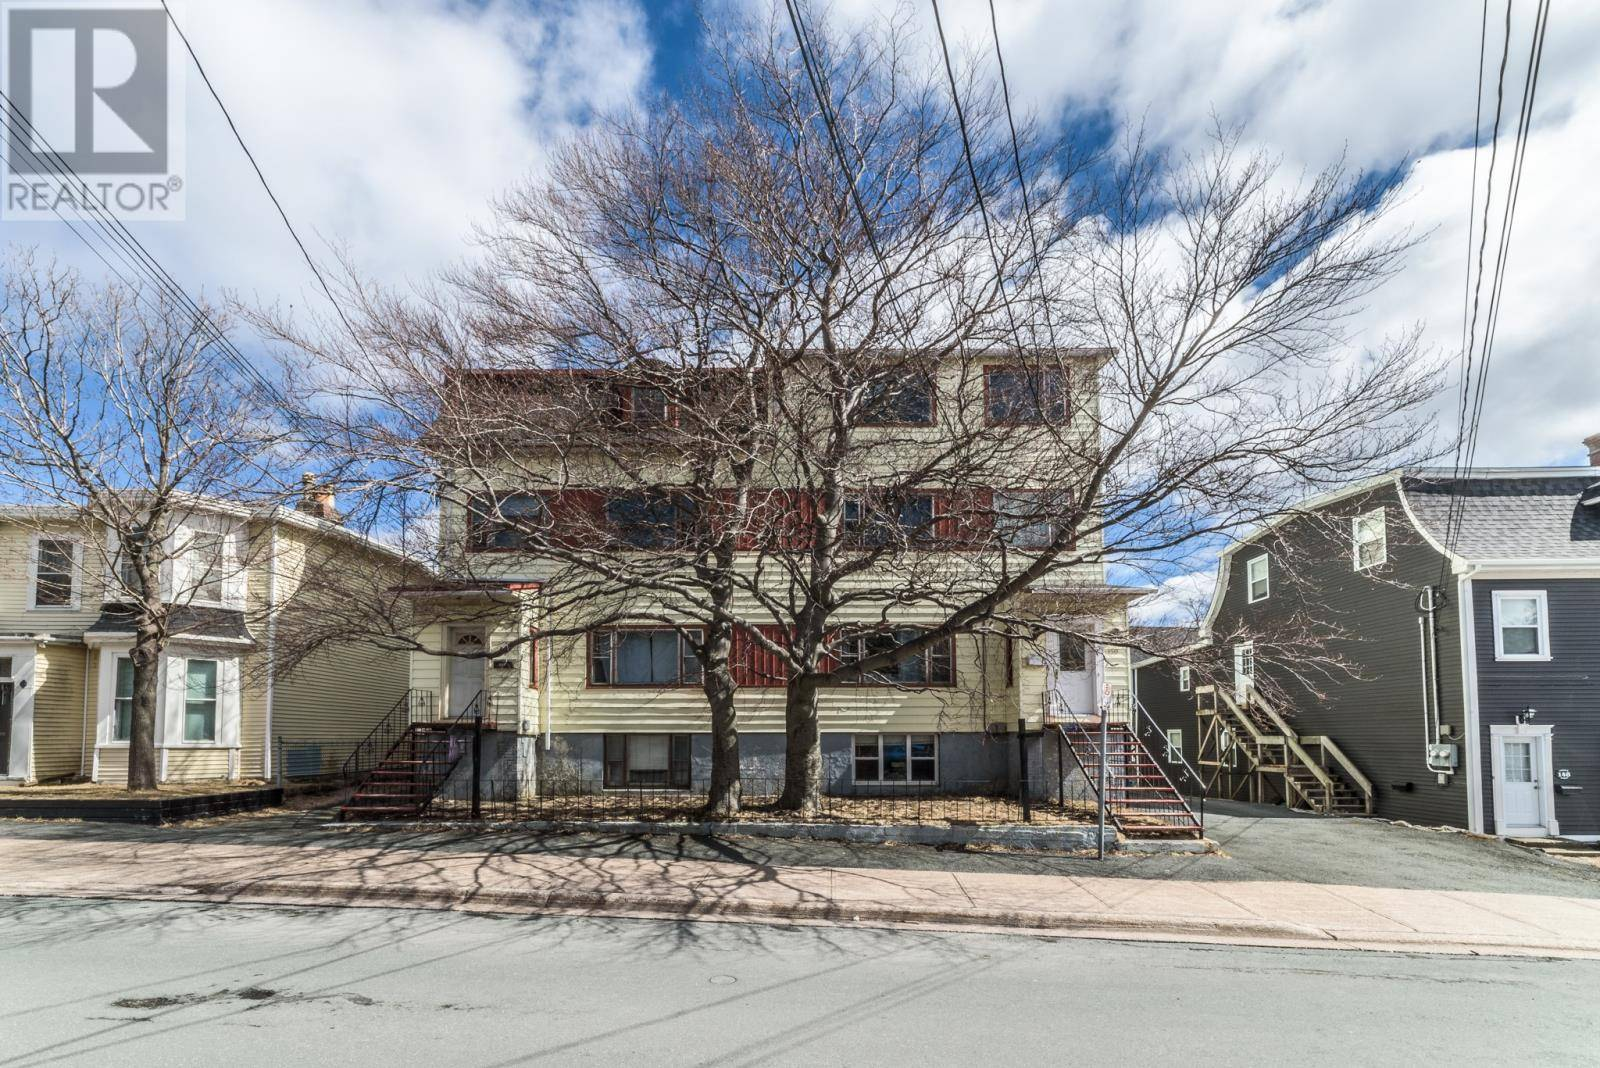 Townhouse for sale at 150 Patrick St St. John's Newfoundland - MLS: 1193615